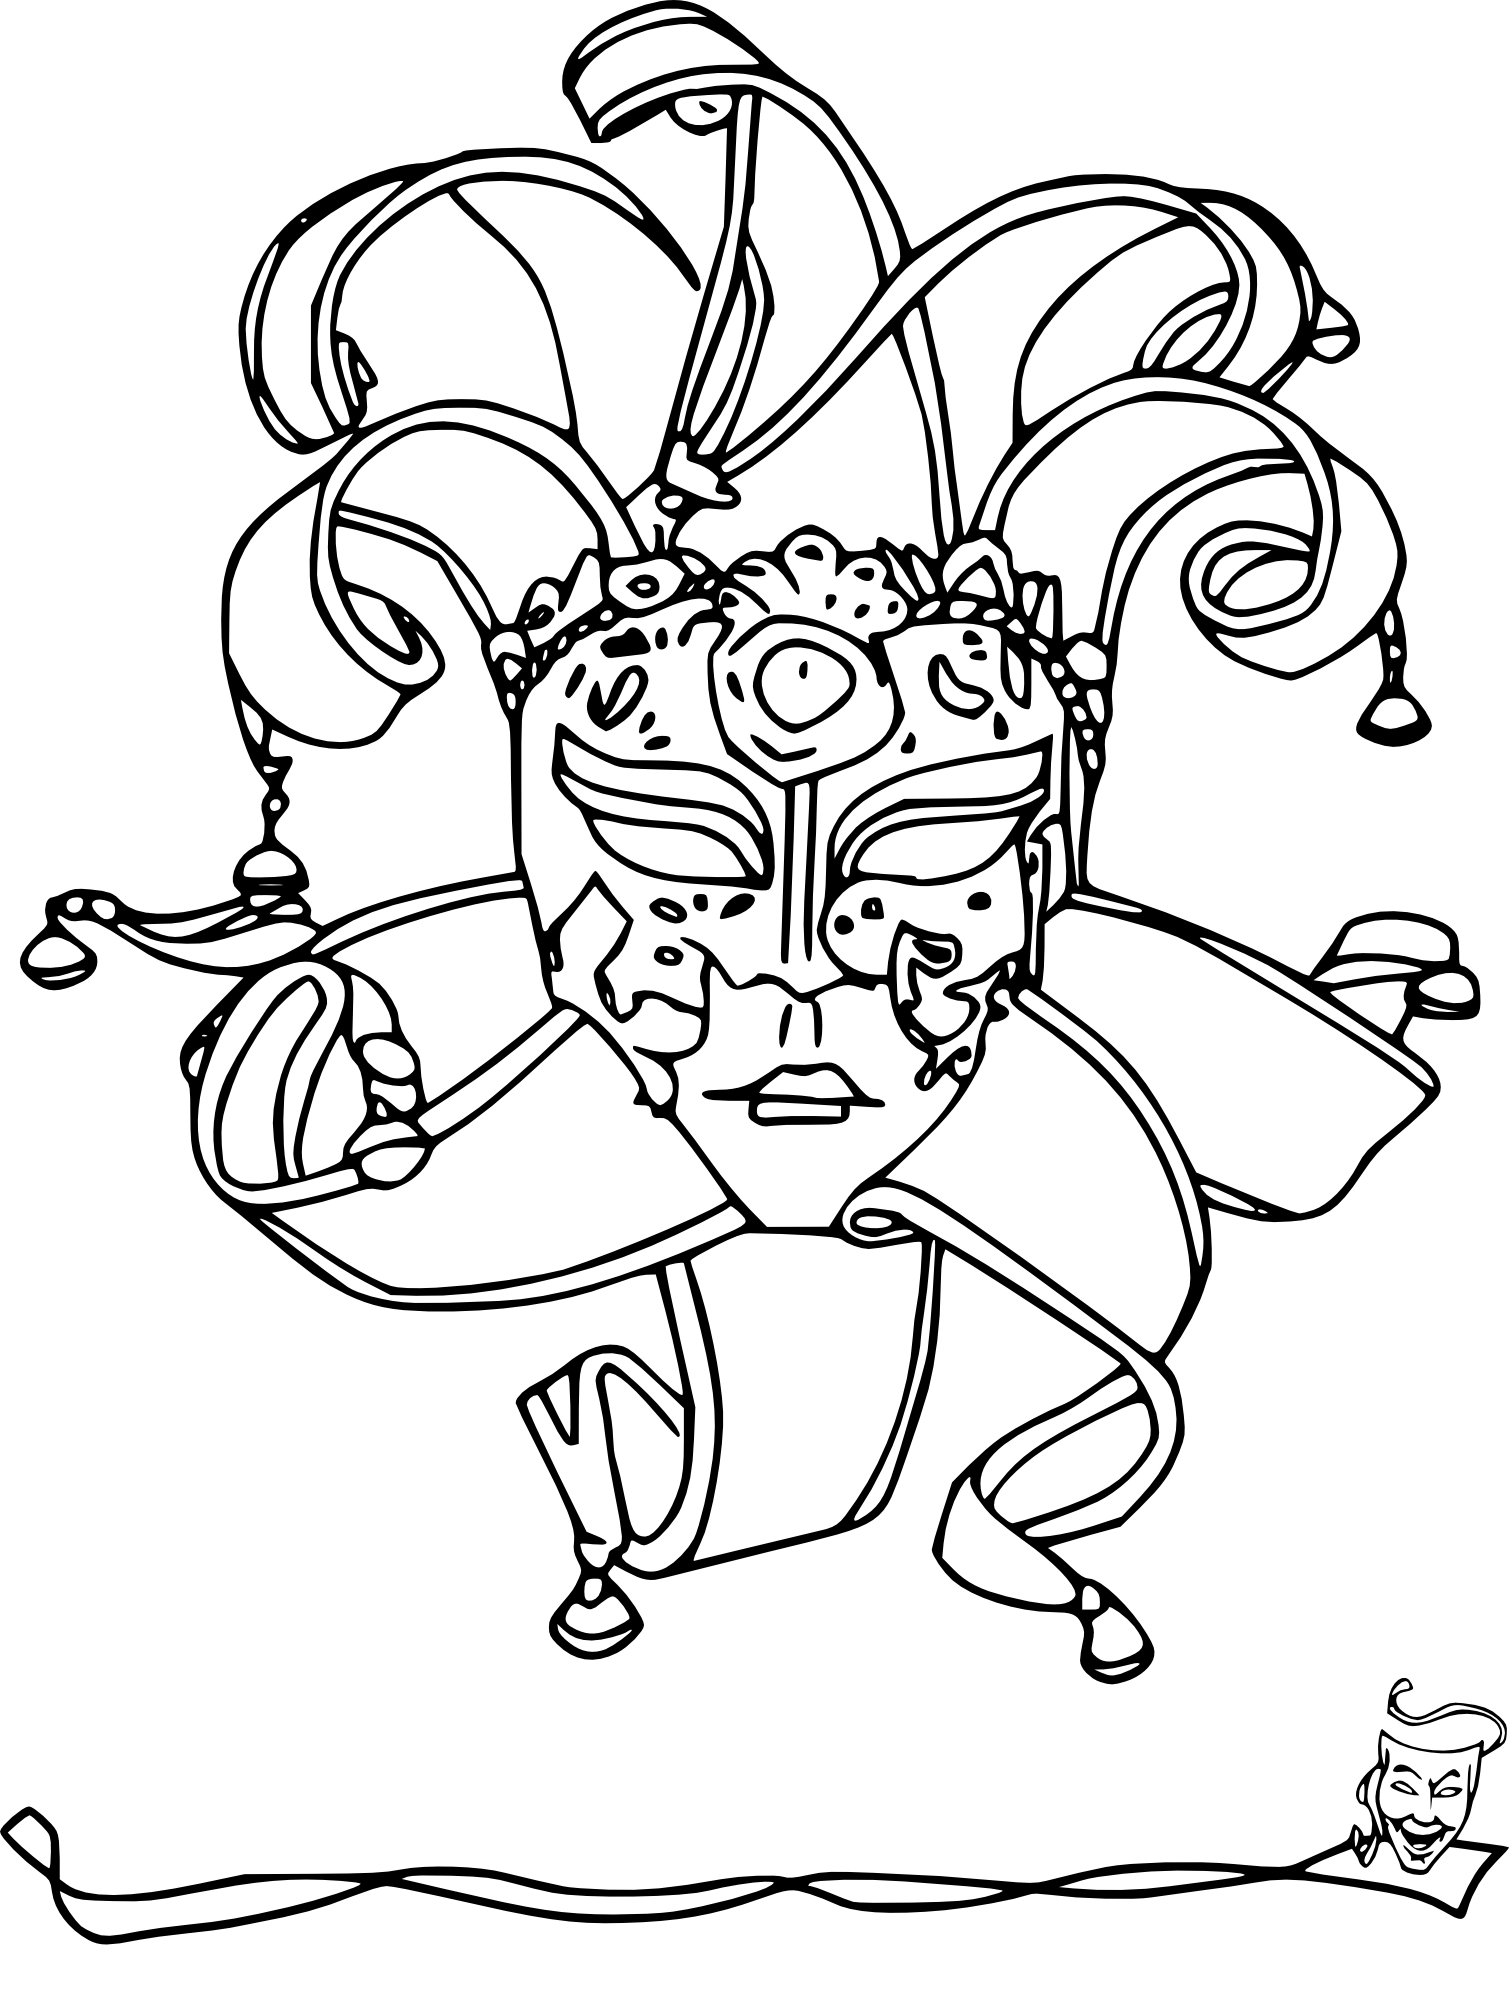 Coloriage masques carnaval - Coloriage masque ...